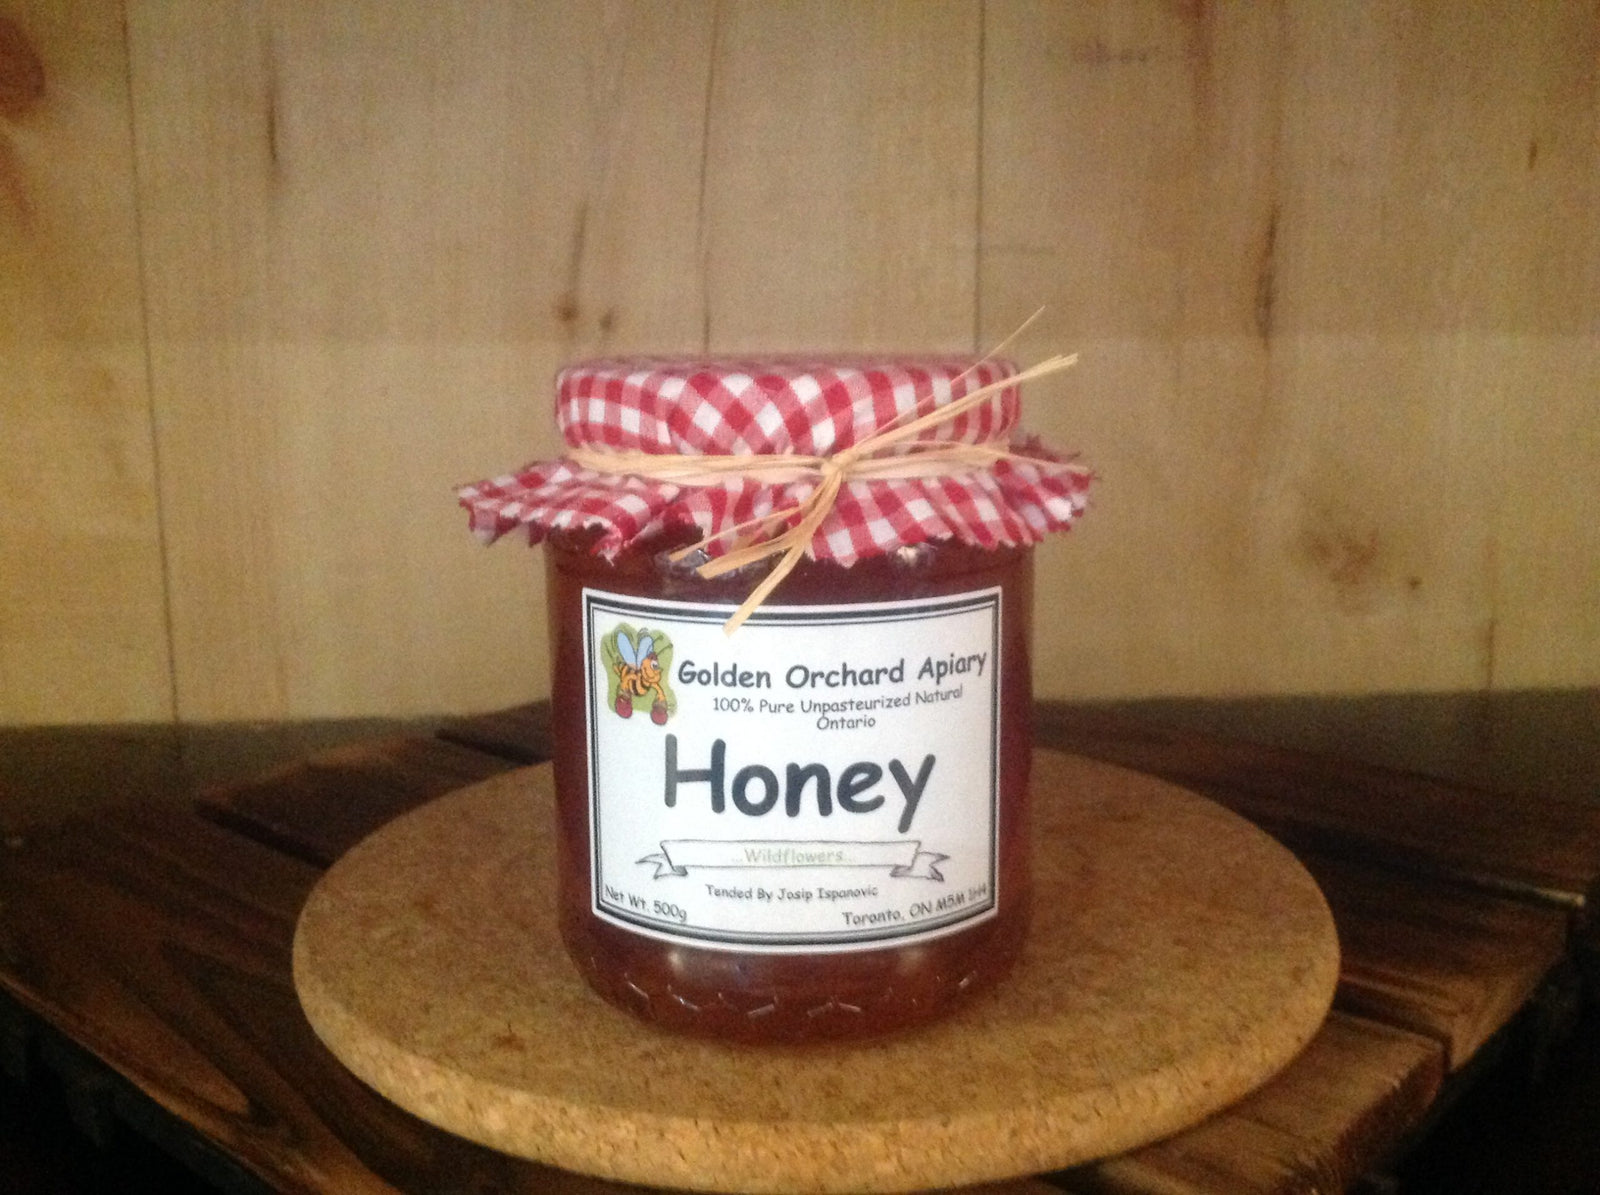 Golden Orchard Apiary Honey